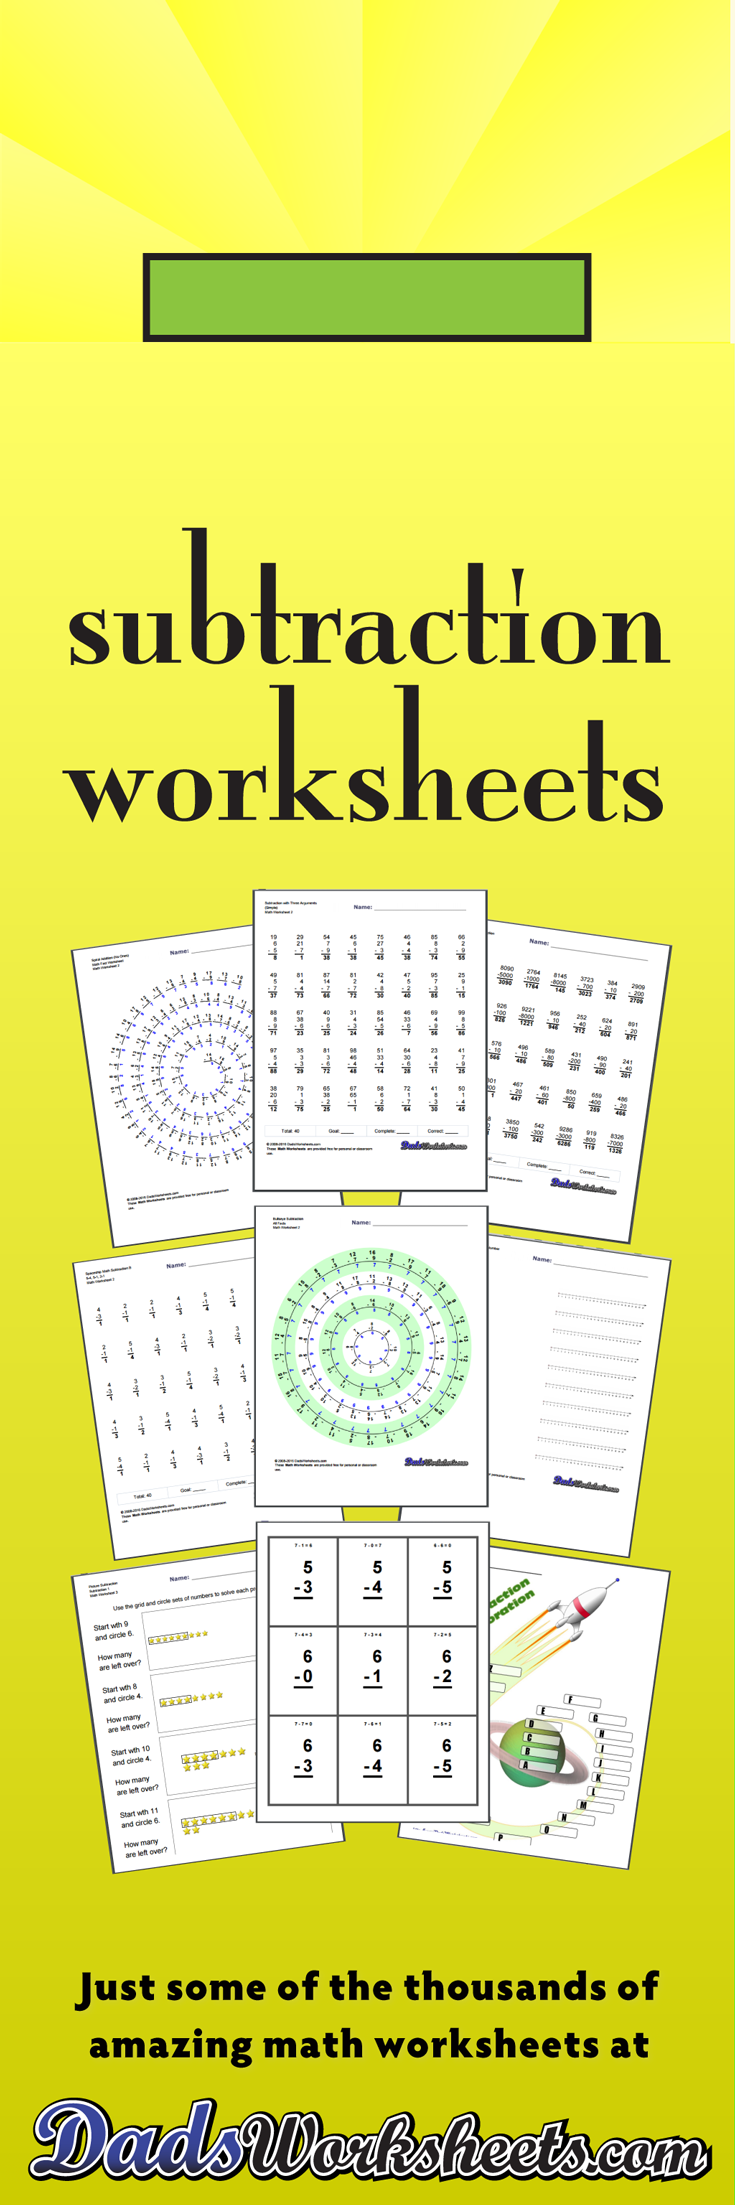 464 Subtraction Worksheets for You to Print Right Now – Subtraction Math Facts Worksheets